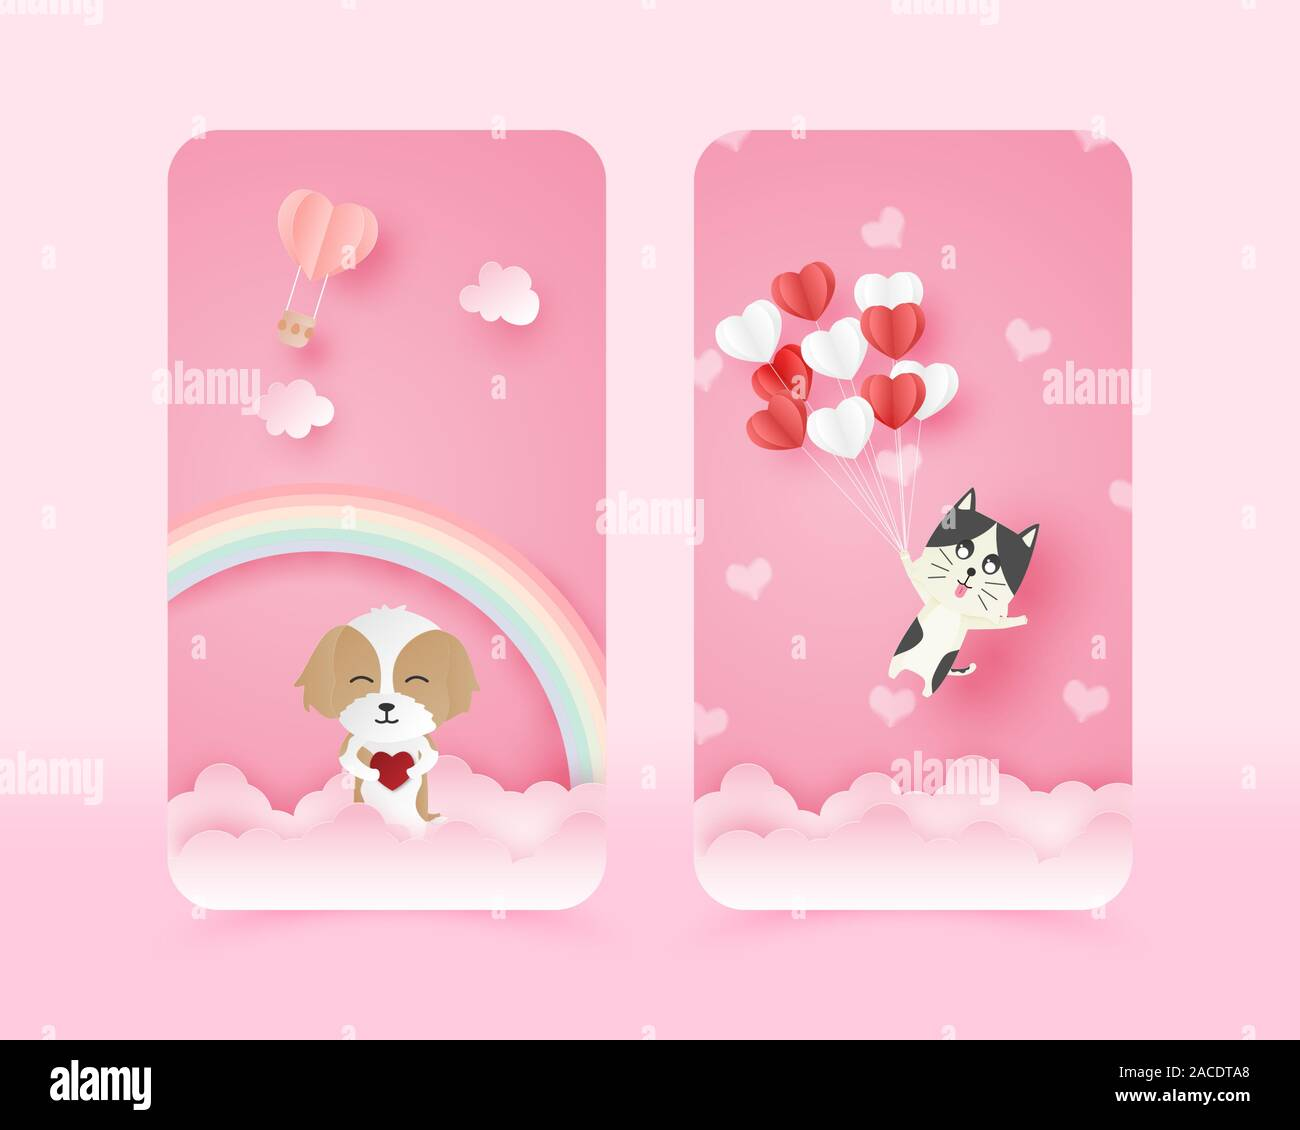 Illustration Of Love Cute Mobile Wallpaper In Paper Cut Style Digital Craft Paper Art Happy Dog And Flying Cat Stock Vector Image Art Alamy